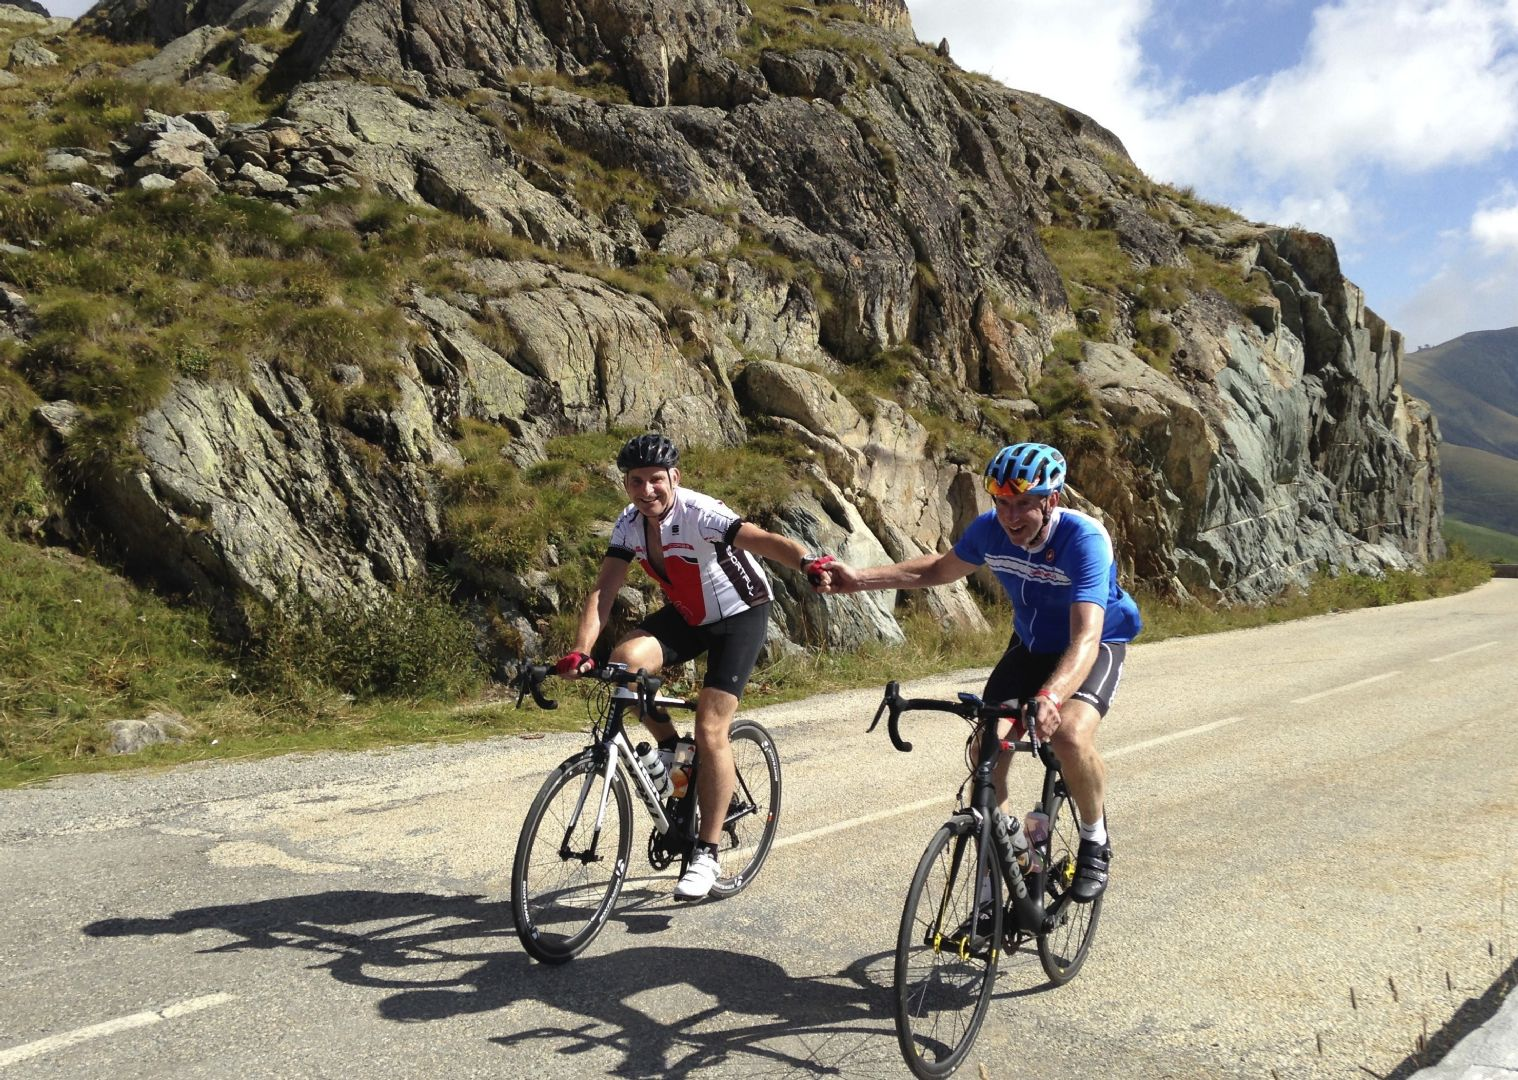 _Staff.292.19620.jpg - France - Classic Alps Passes - Alpine Introduction - Guided Road Cycling Holiday - Road Cycling